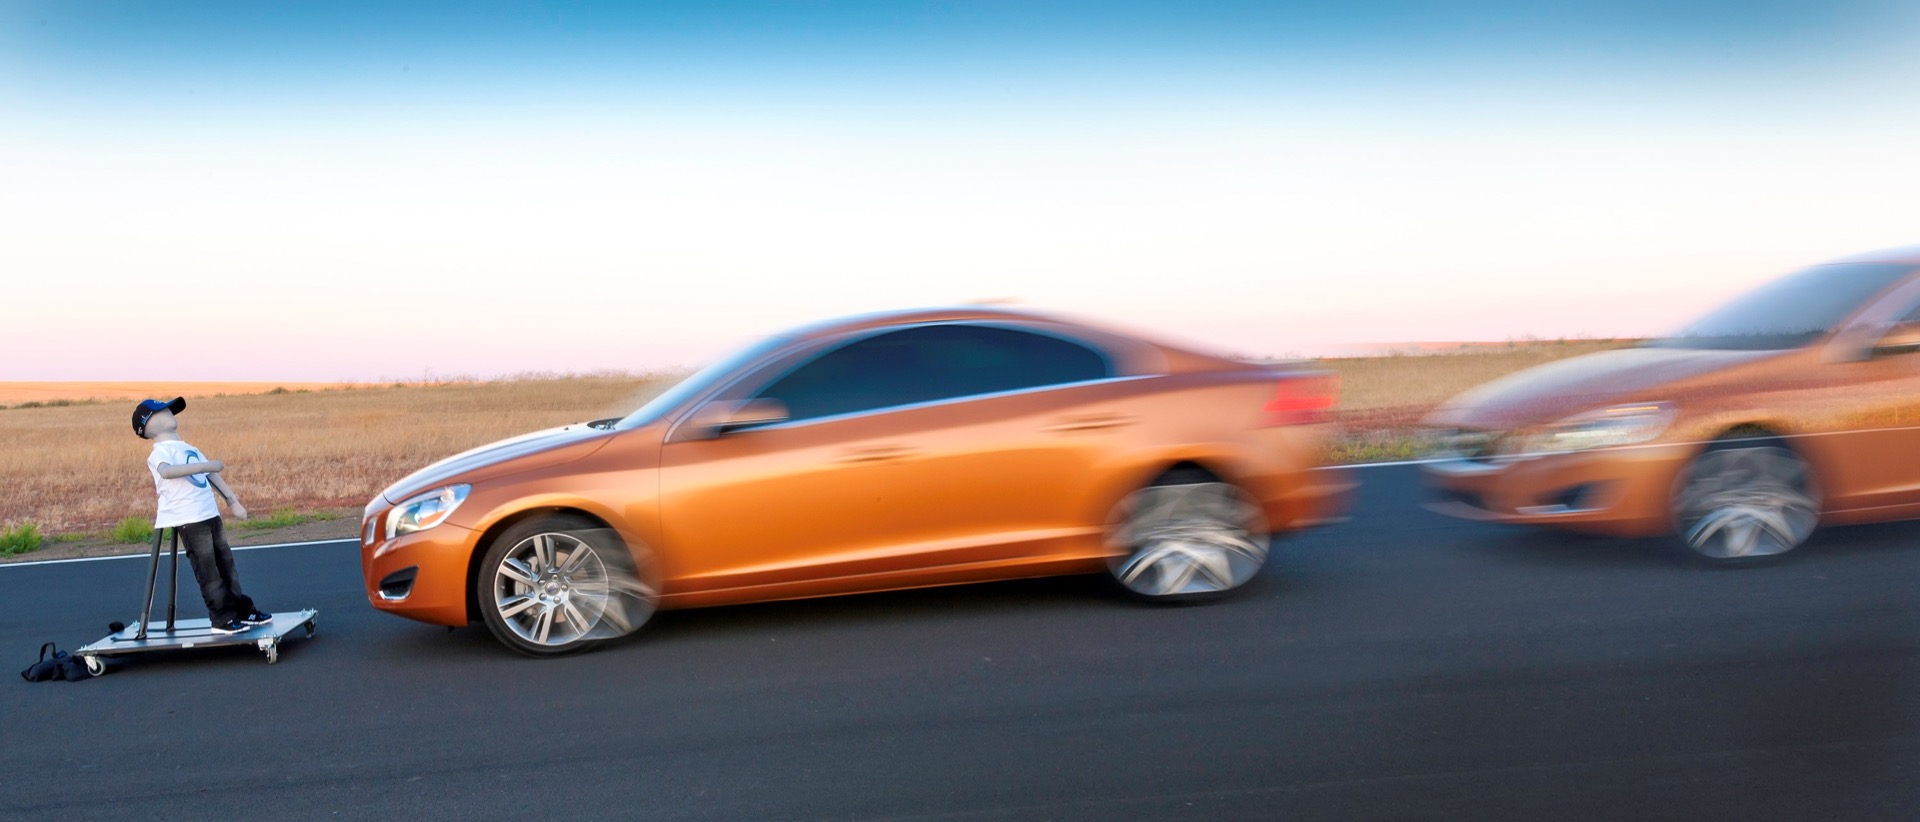 S60 T6 Awd Pedestrian Detection With Full Auto Brake02 -  Volvo